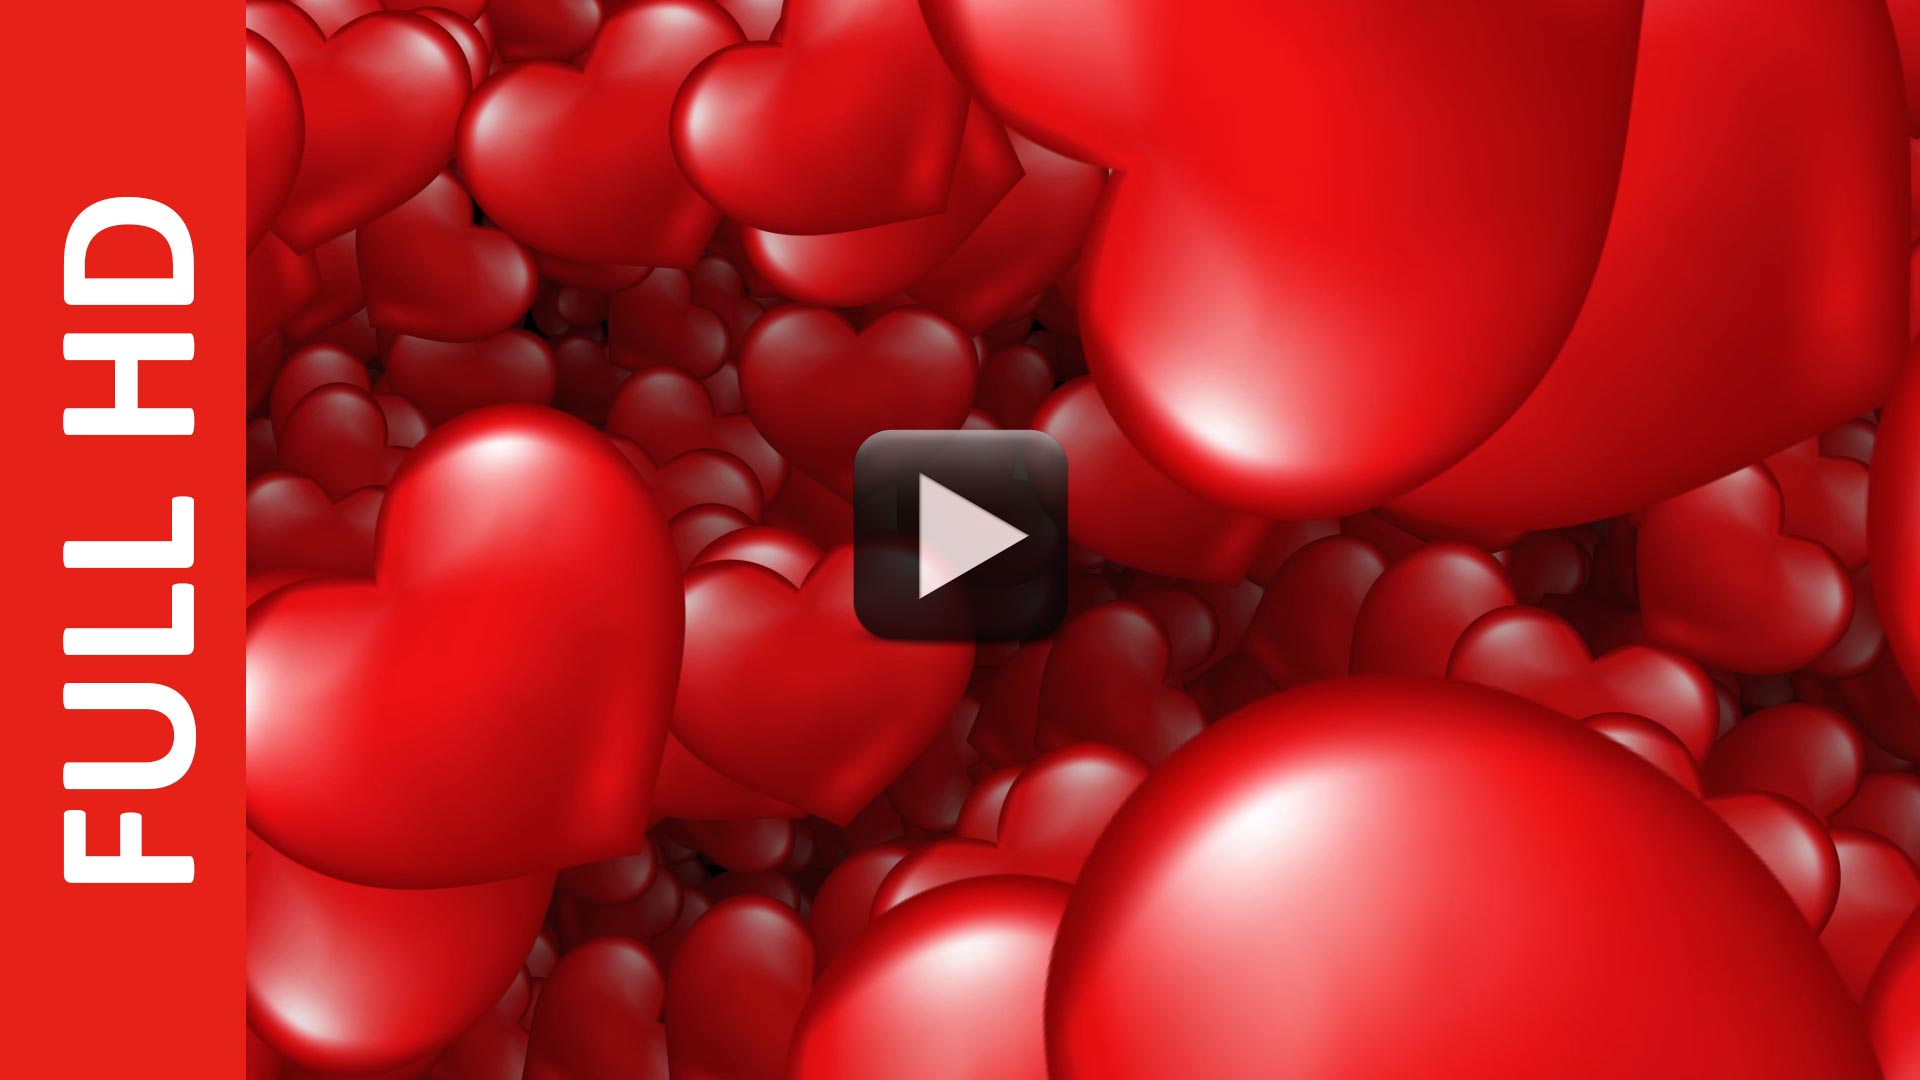 Moving Red Love Hearts Animation Background